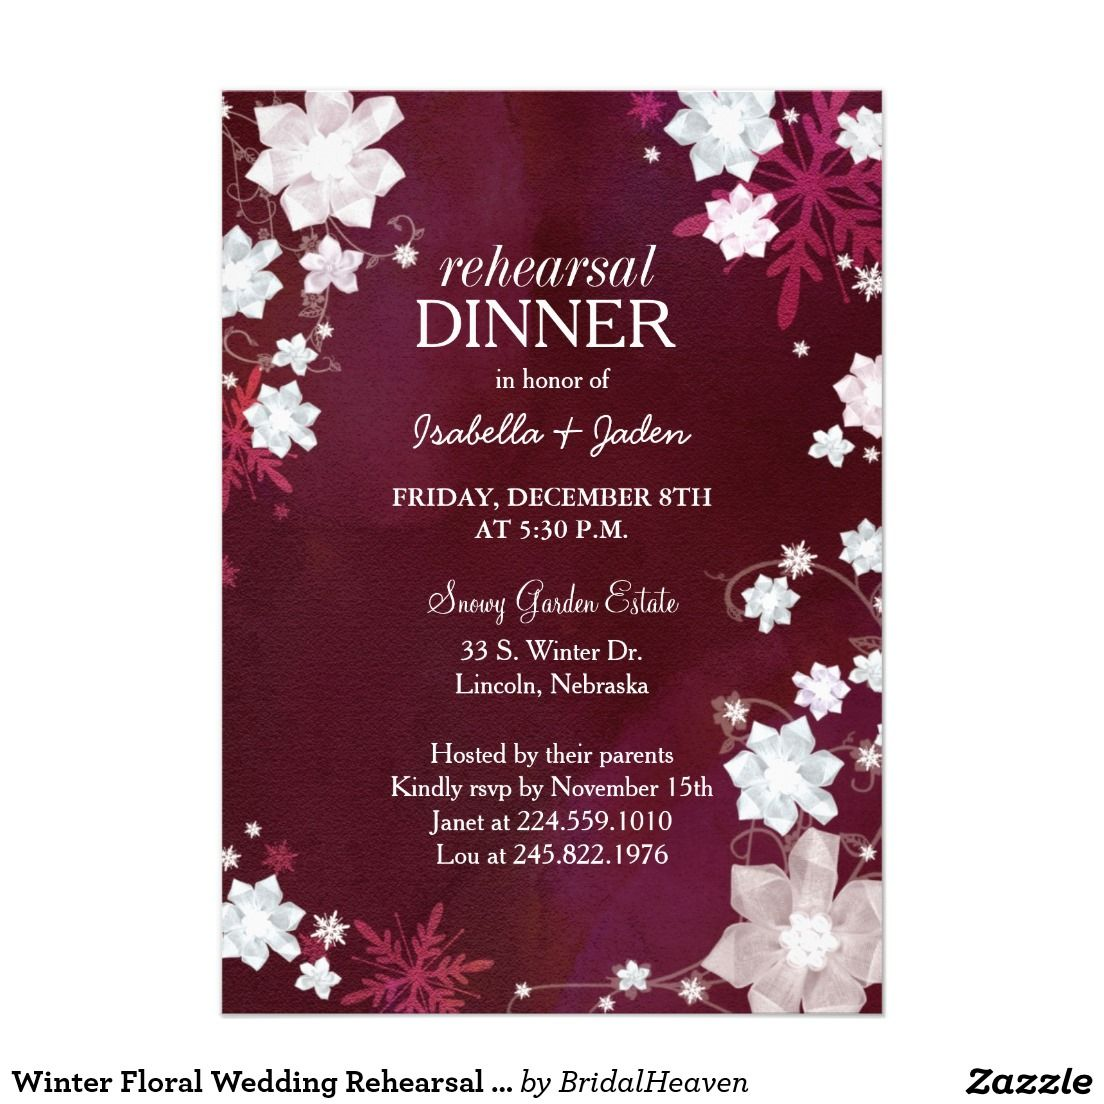 Winter Floral Wedding Rehearsal Dinner Invitation | WINTER WEDDING ...